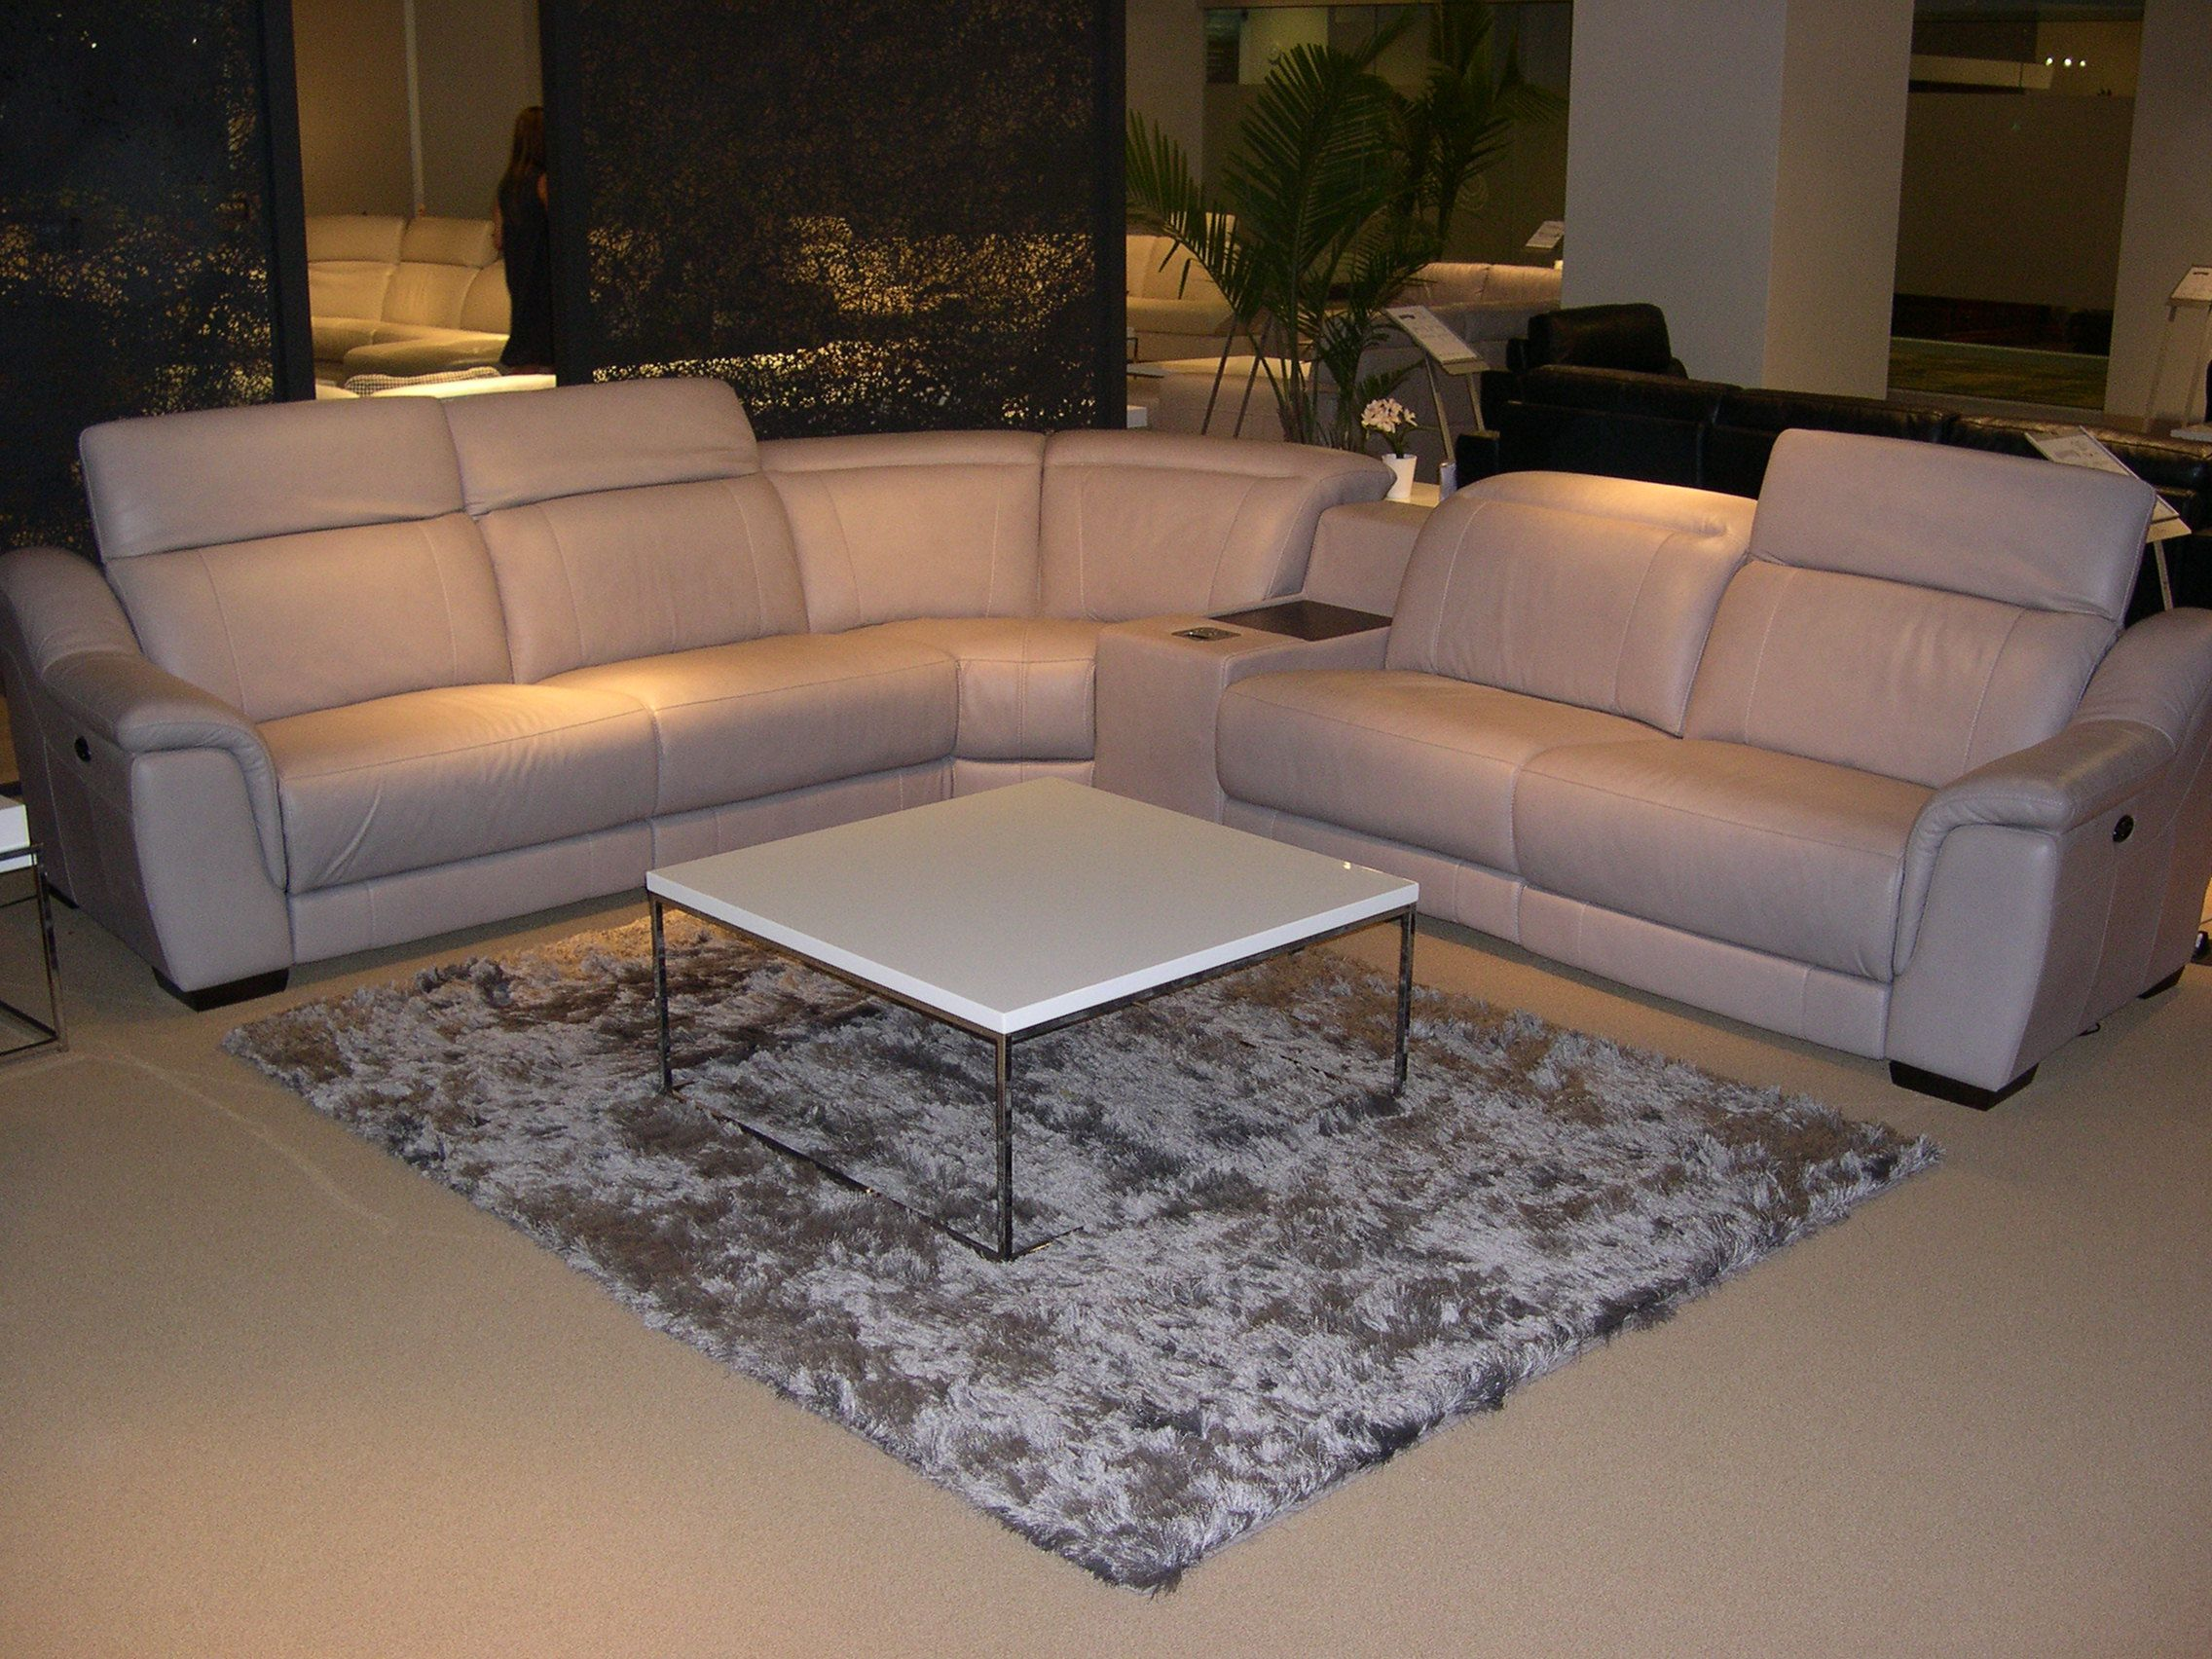 HTL Leather Sectional - Adjustable headrests. Note the built-in media console. : built in sectional - Sectionals, Sofas & Couches